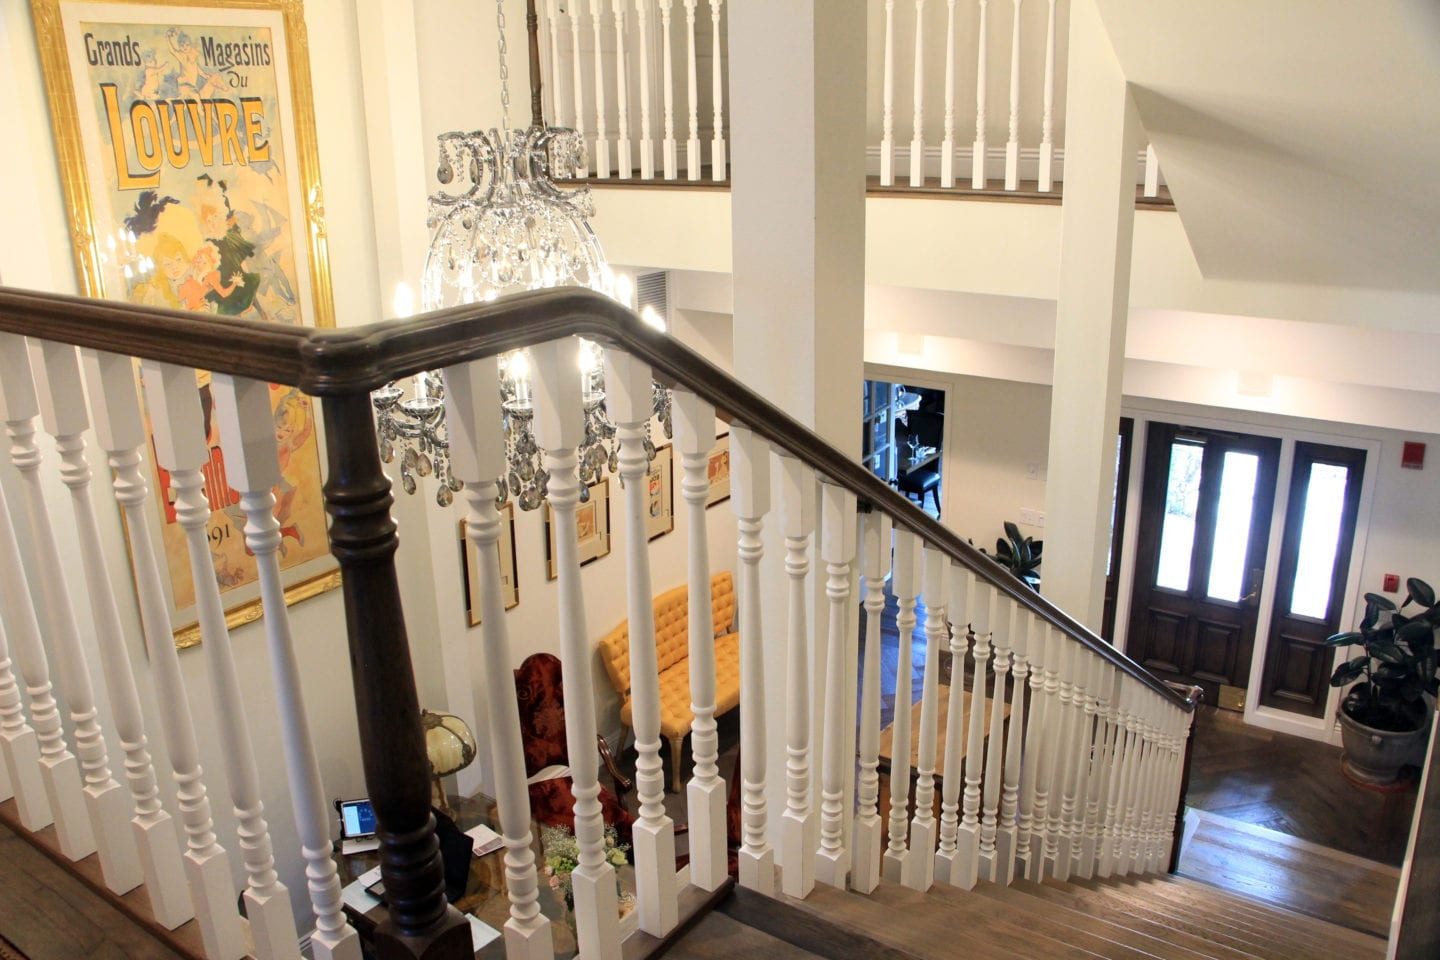 Lobby staircase at the Mirabelle Inn